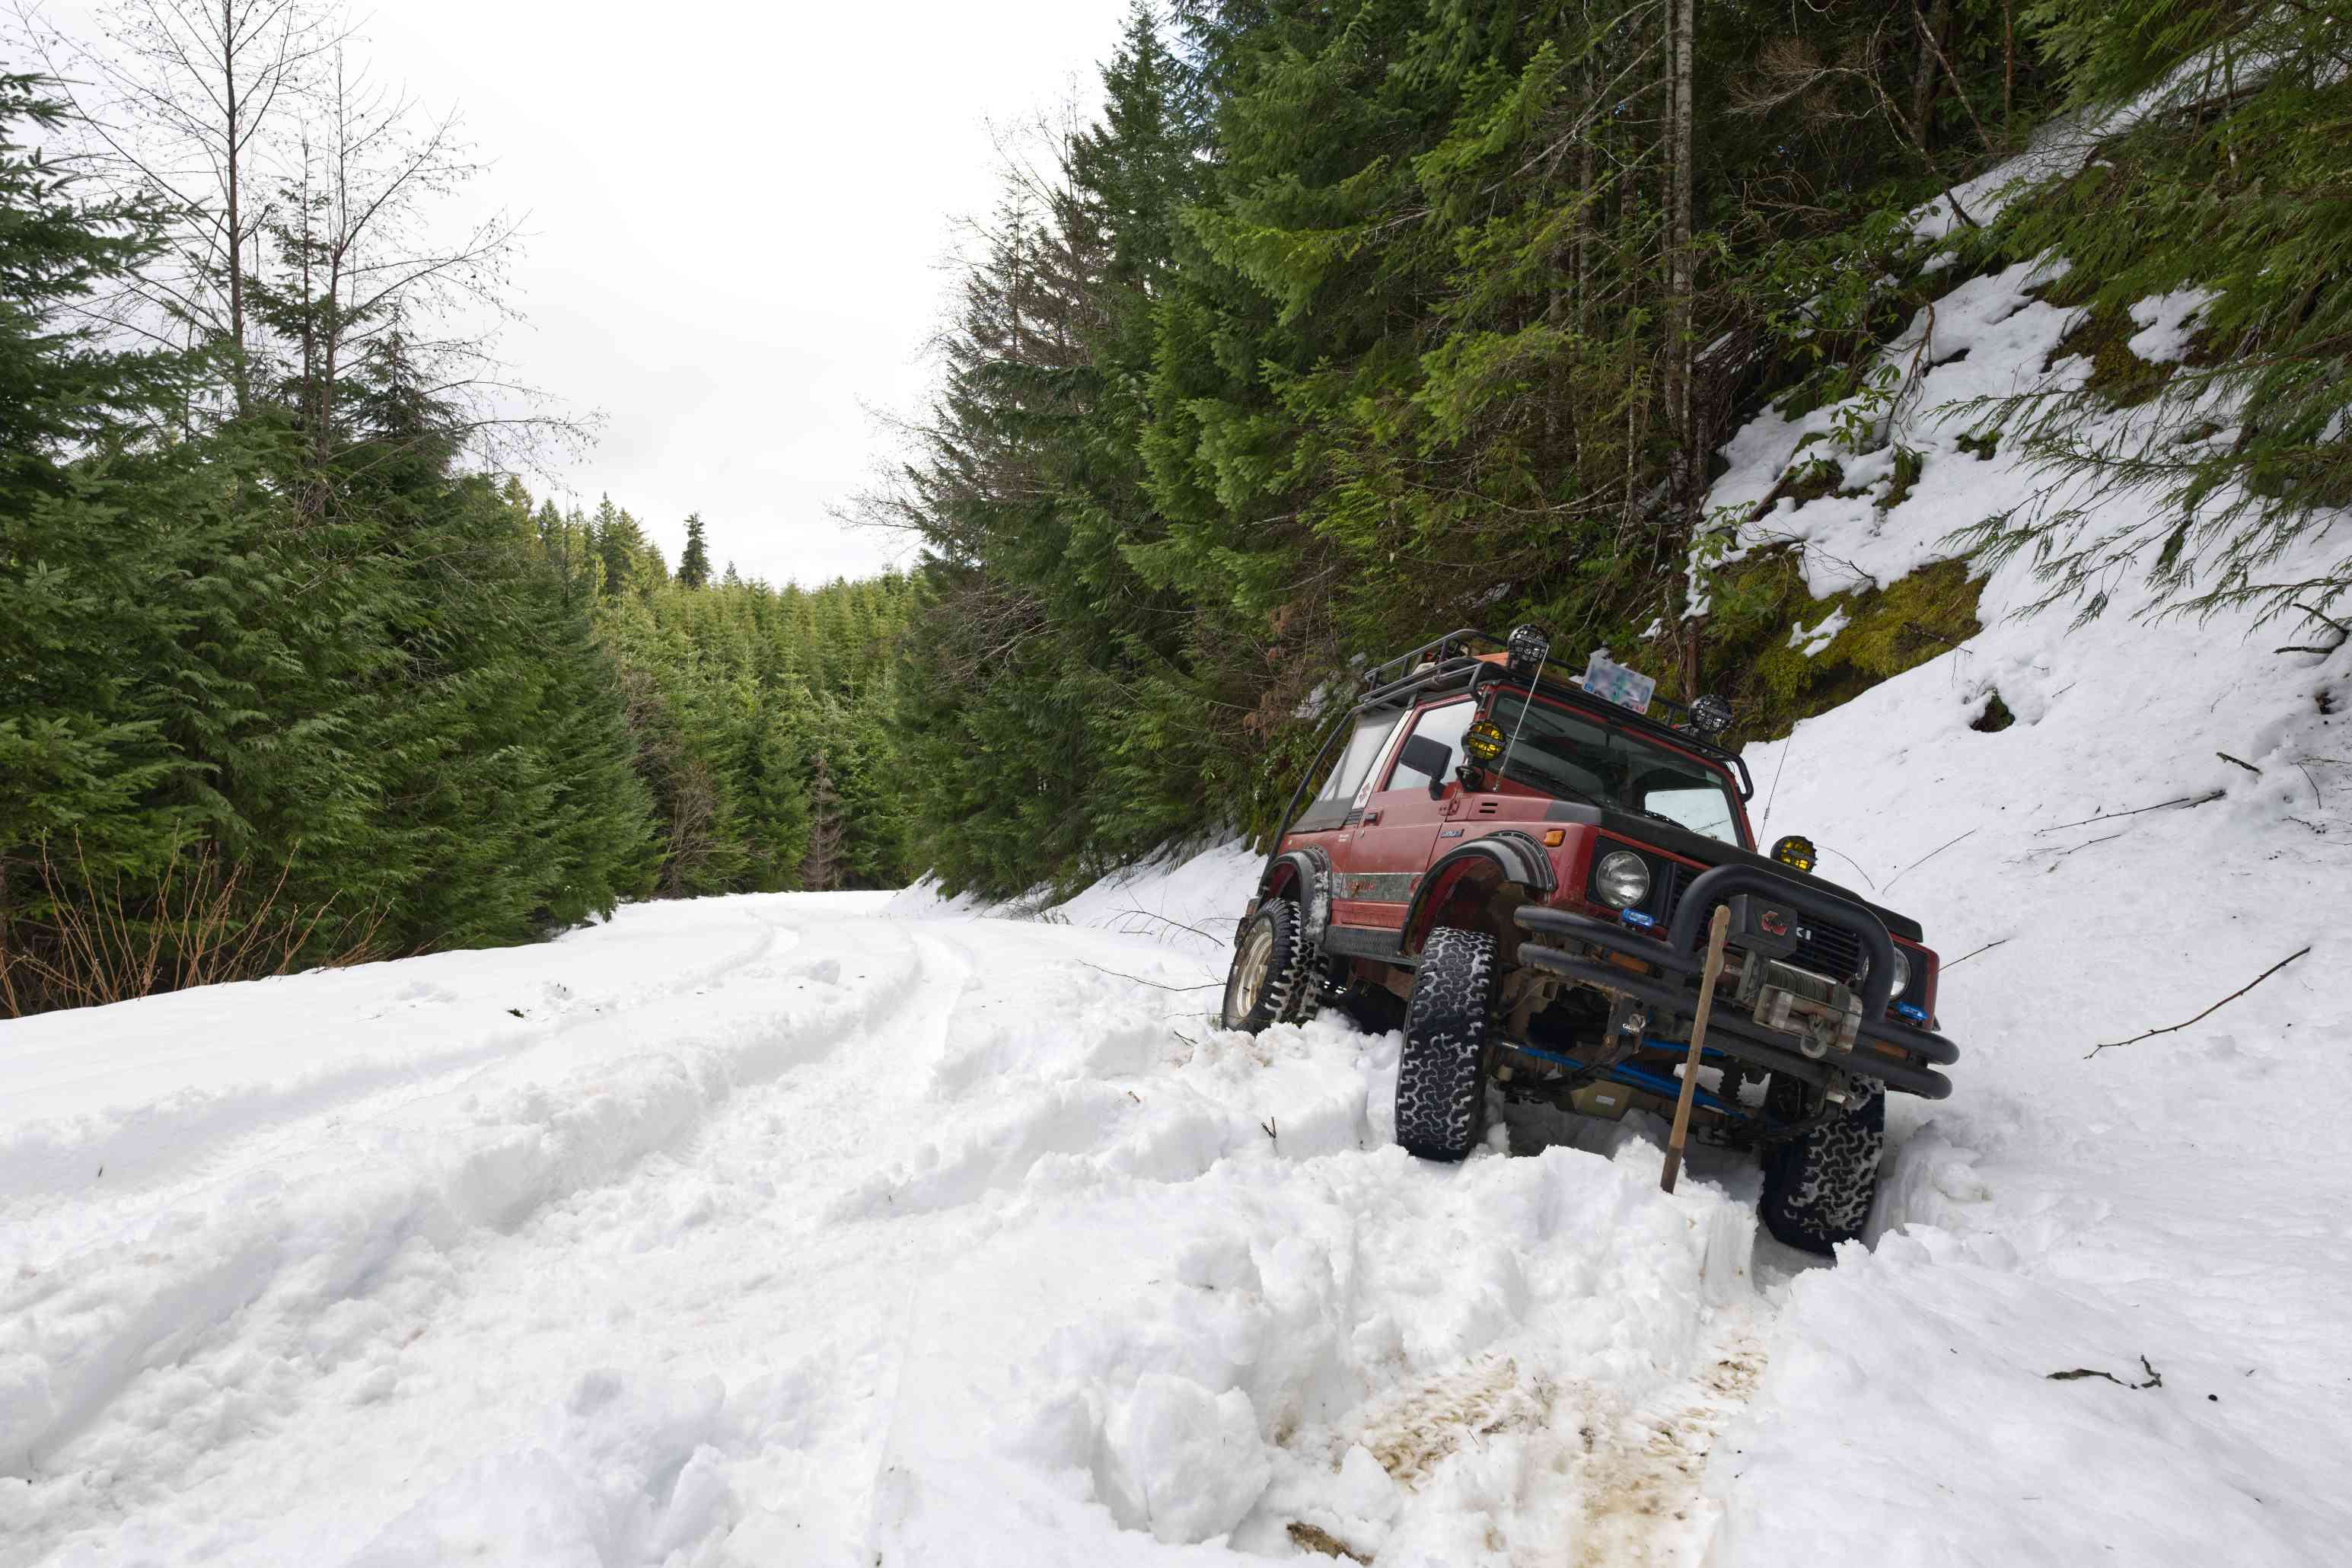 big jeep stuck in snow bank on mountain